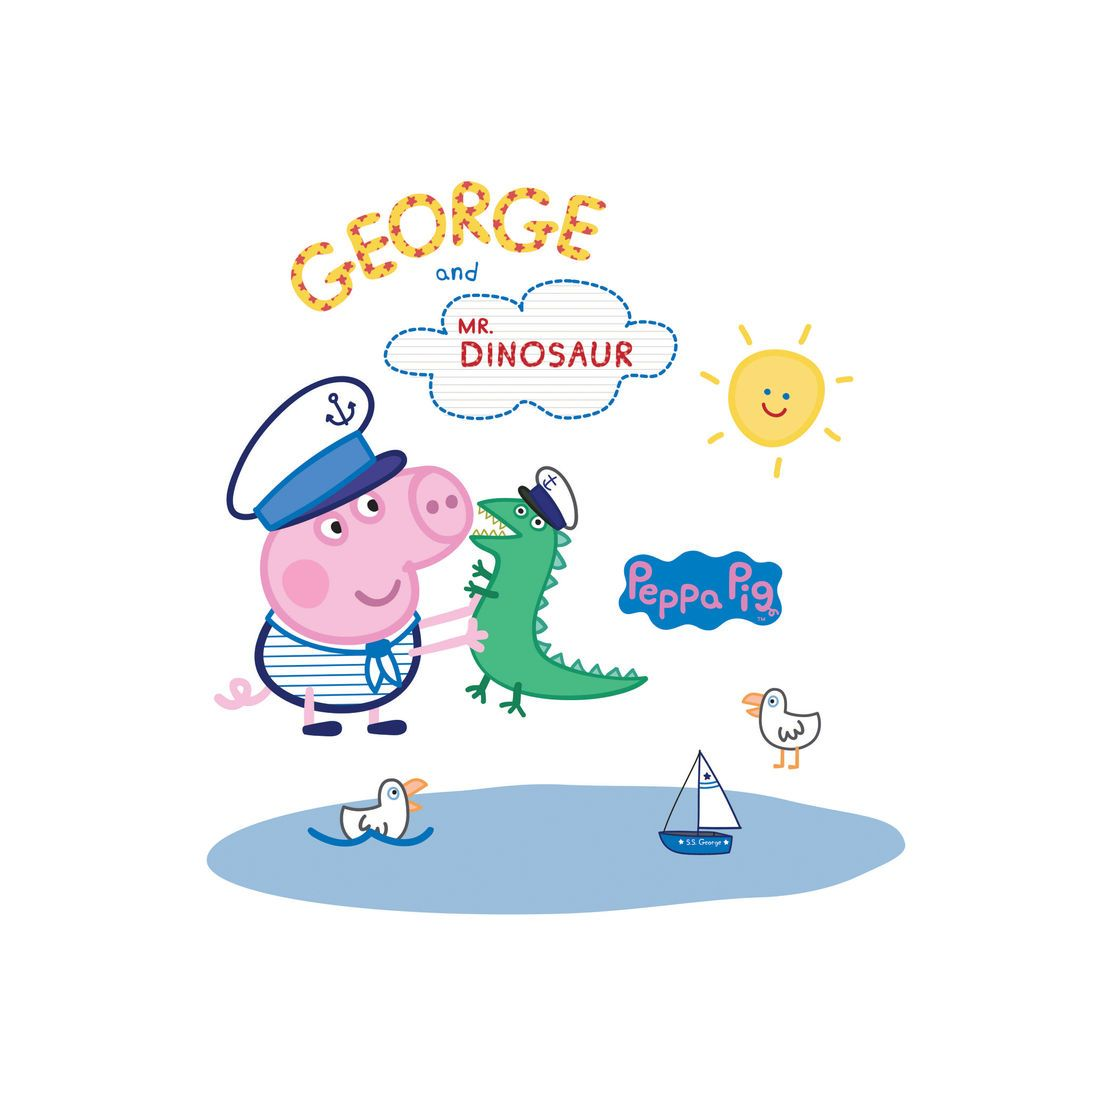 Peppa Pig Meet Captain George